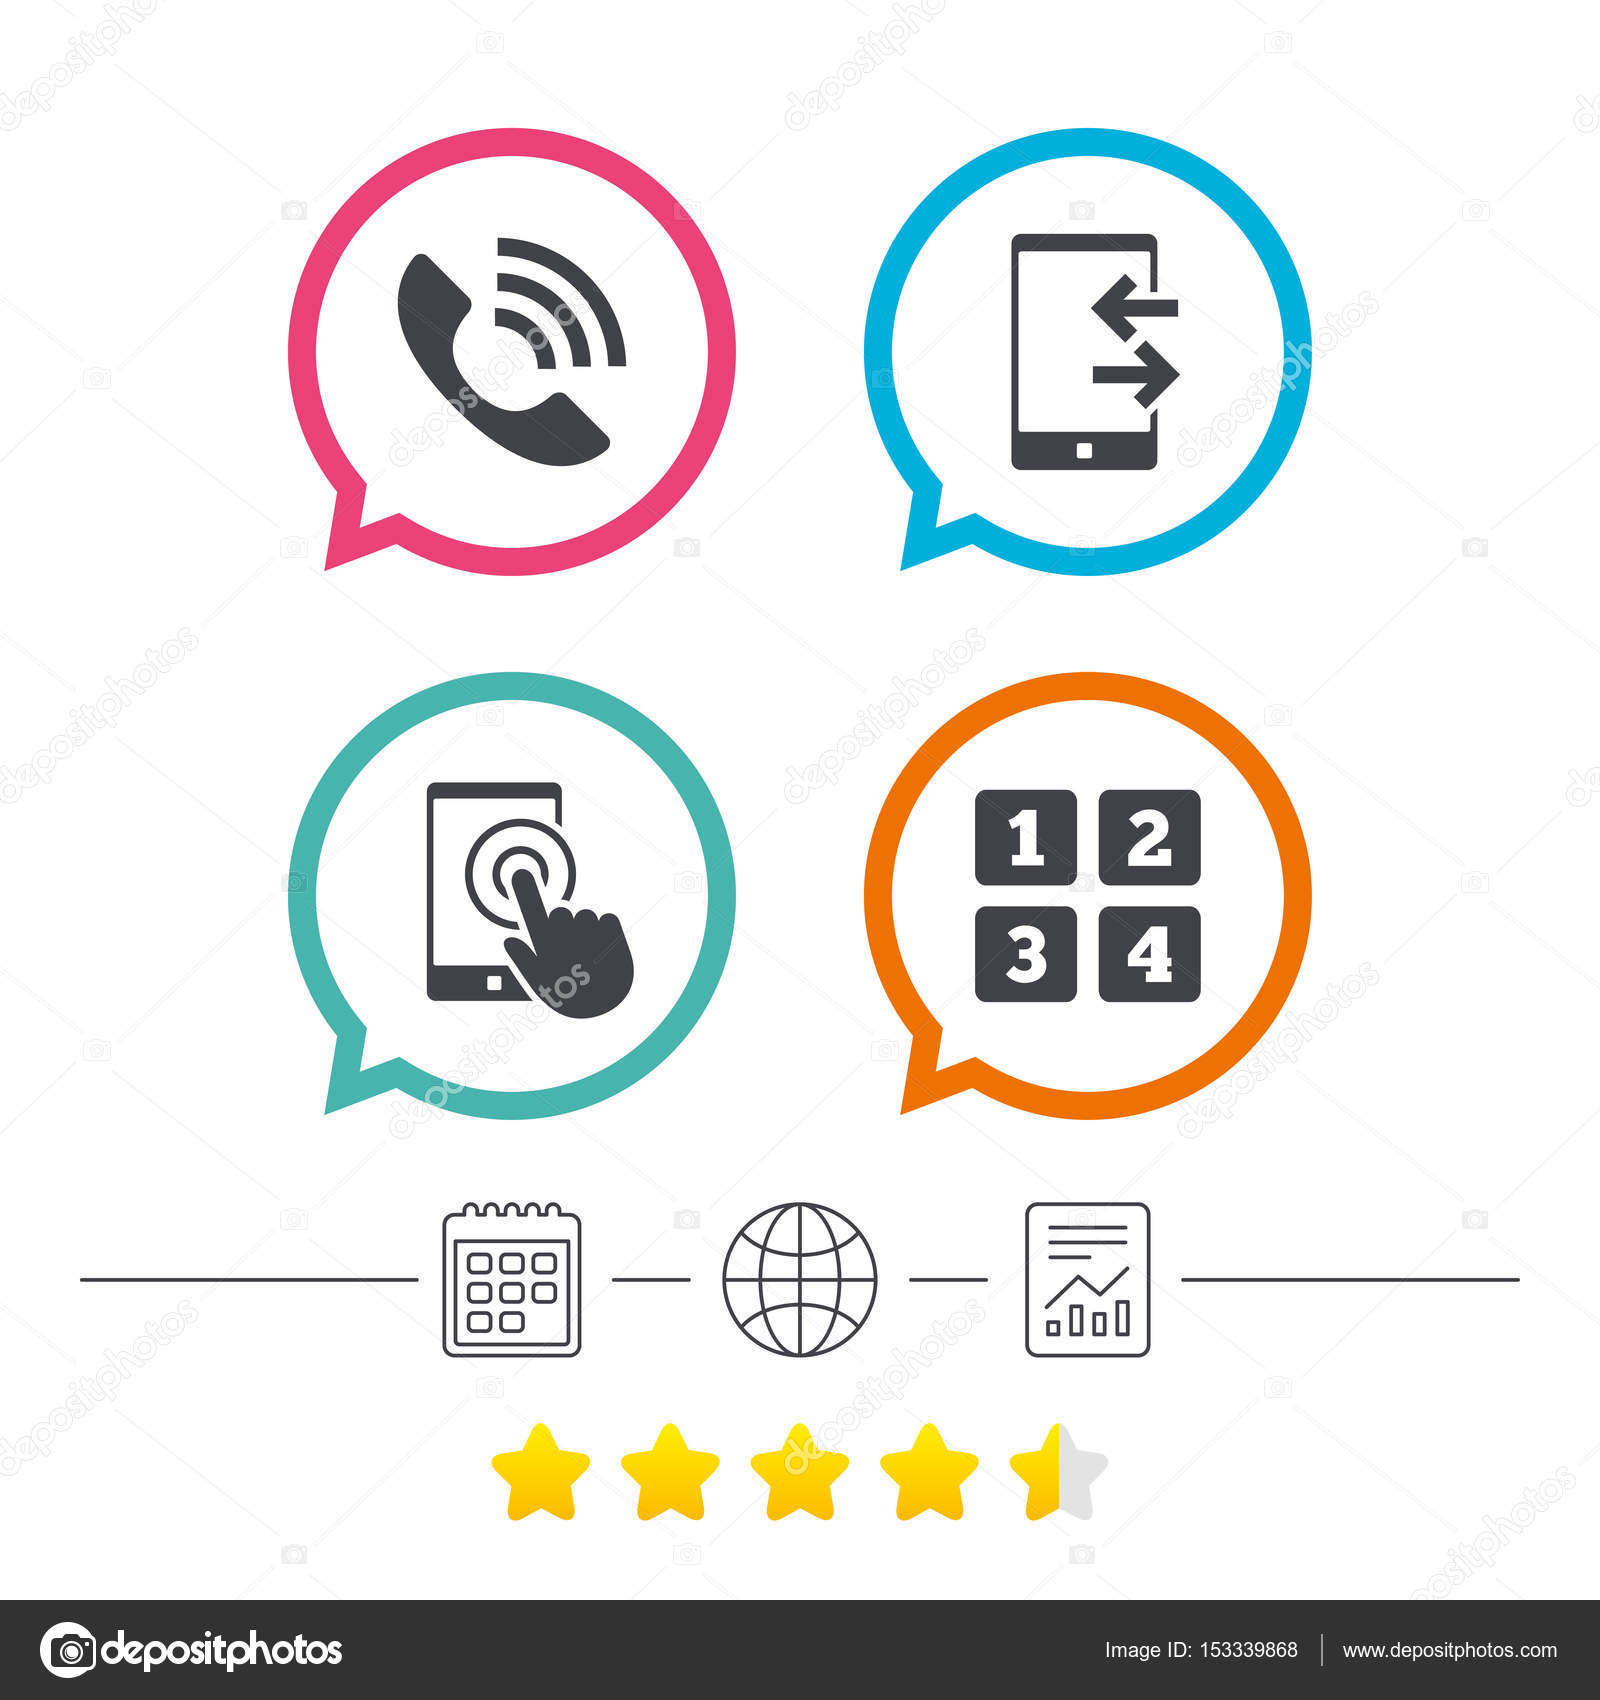 Call center support symbol stock vector blankstock 153339868 call center support symbol cellphone keyboard symbol incoming and outcoming calls calendar internet globe and report linear icons star vote ranking biocorpaavc